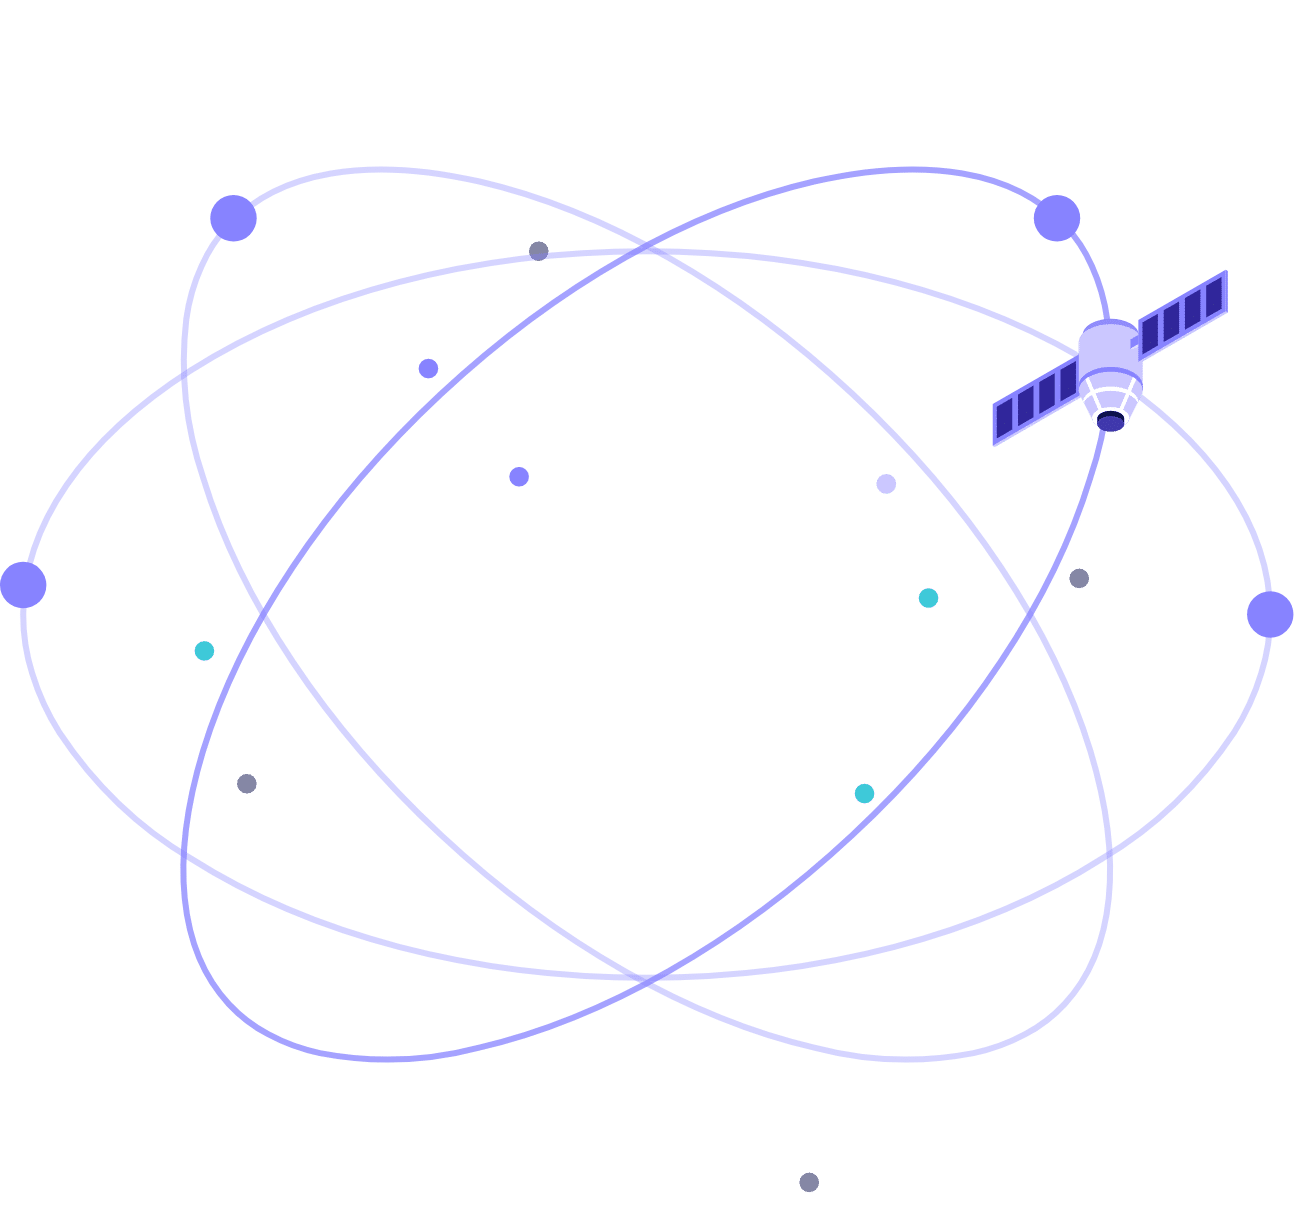 planets and satellite orbiting path